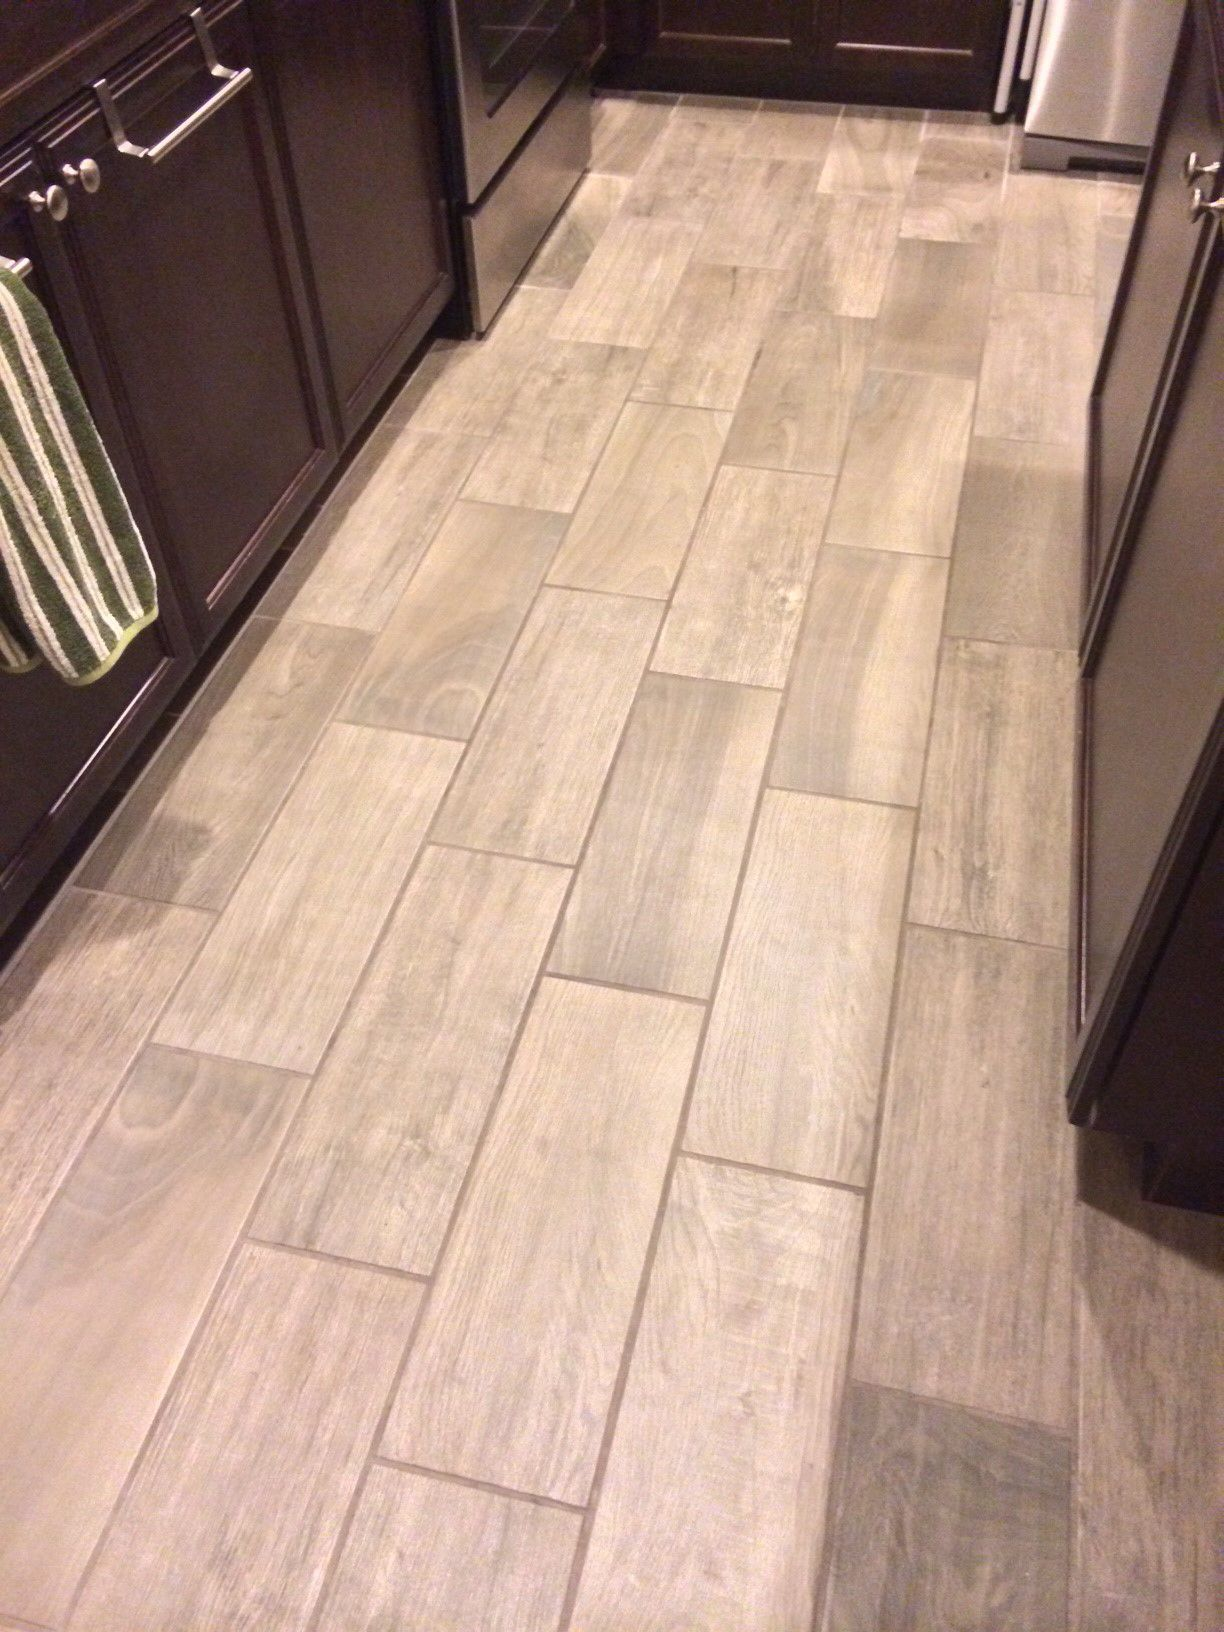 Cliffs Edge Emblem Gray Wood Tile Kitchen Ceramic Floor Look